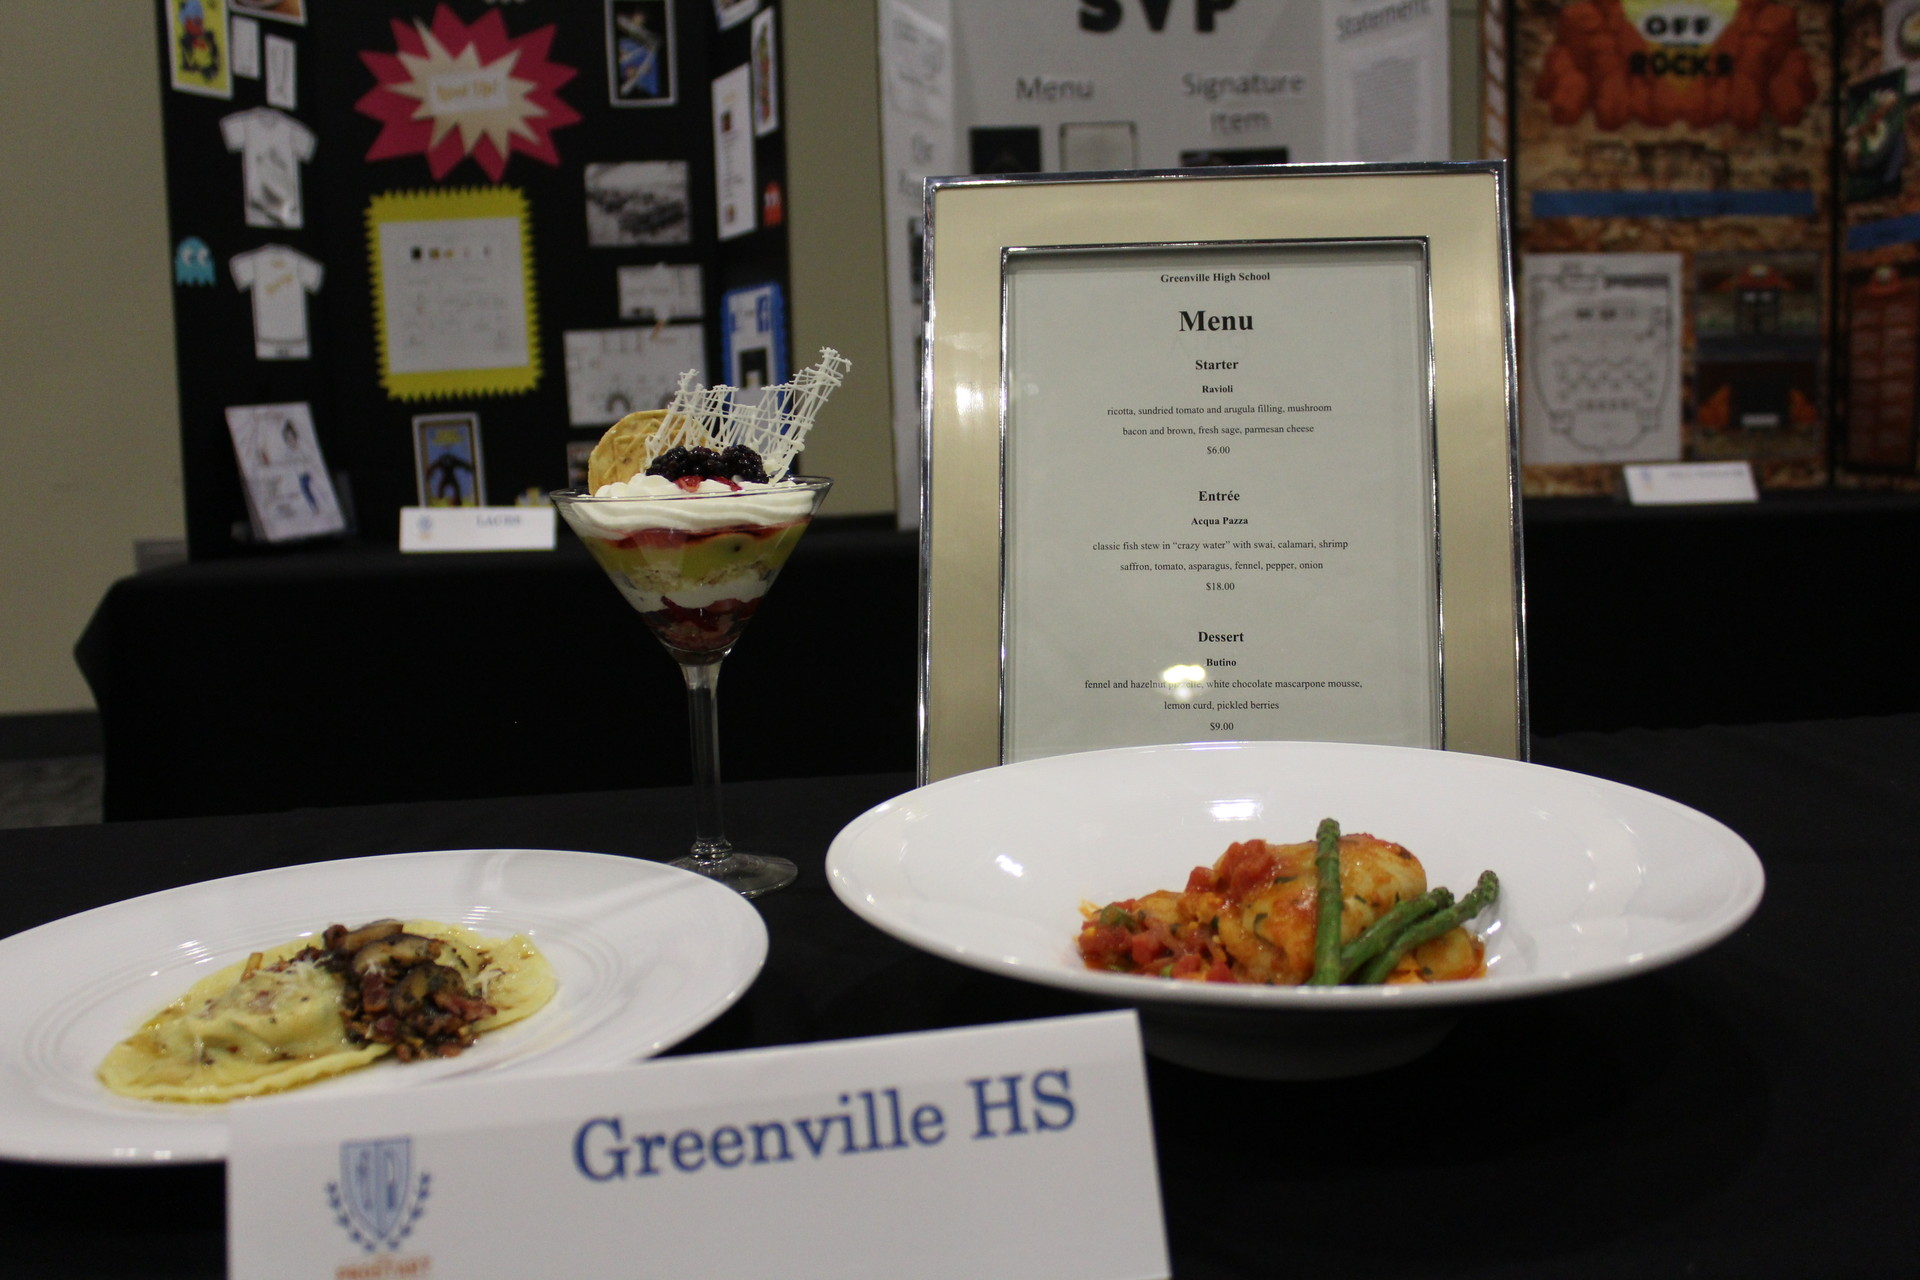 The winning dishes from Greenville High: ravioli in a brown butter sauce with sage, bacon, and shitake mushrooms; All'Acqua Pazza (fish in broth); and a parfait with lemon curd, pickled berries, fennel and a cookie.